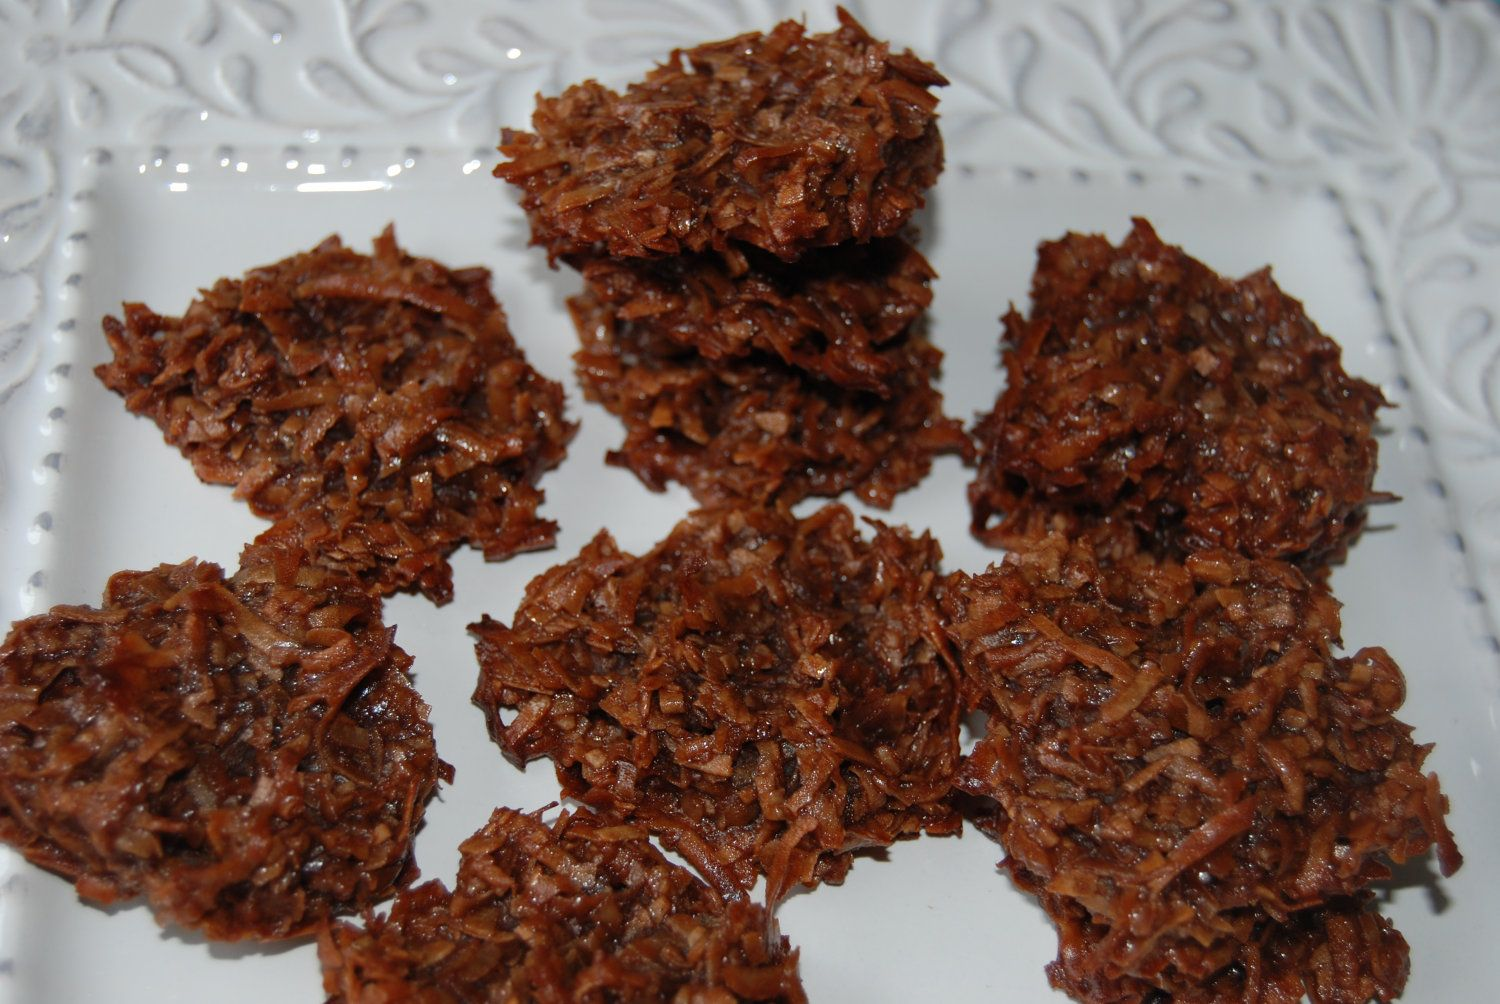 Chewy Chocolate Macaroons (Unsweetened chocolate)  Melt 4oz (1/2 cup) of bitter chocolate. Add 14oz can sweetened condensed milk & 14oz bag of Flake coconut. Mix well. Roll in 1-inch balls (or drop from teaspoon) onto baked, parchment lined cookie sheets. Bake at 350 for 10-12 minutes.